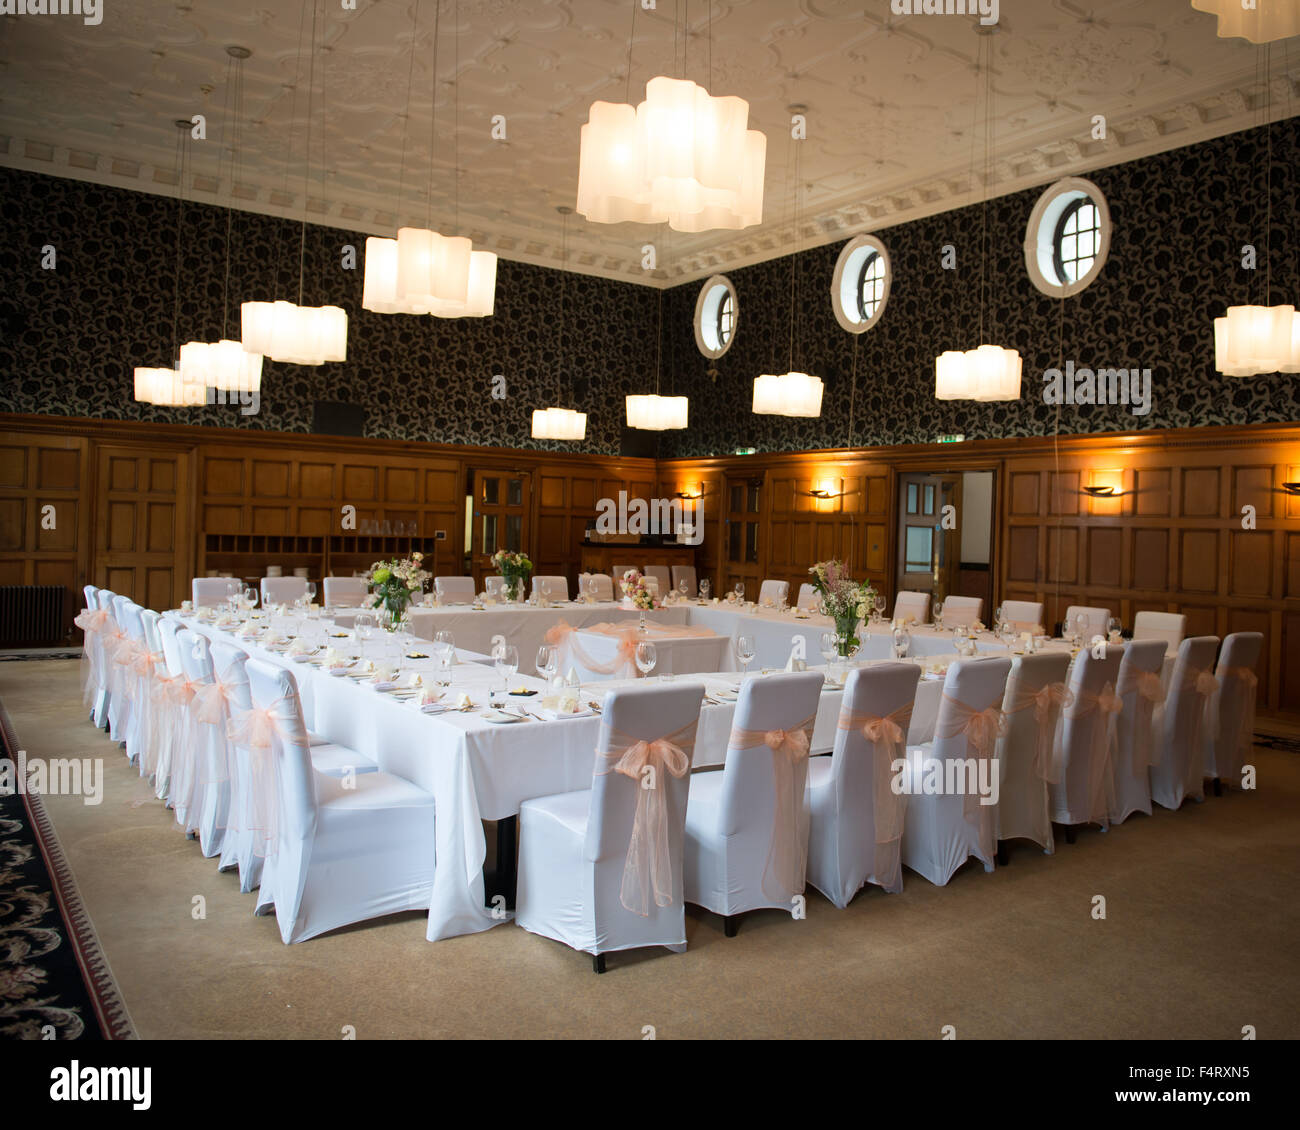 wedding reception room table layout tables set in a square formation with the cake in the centre white chair covers peach bows